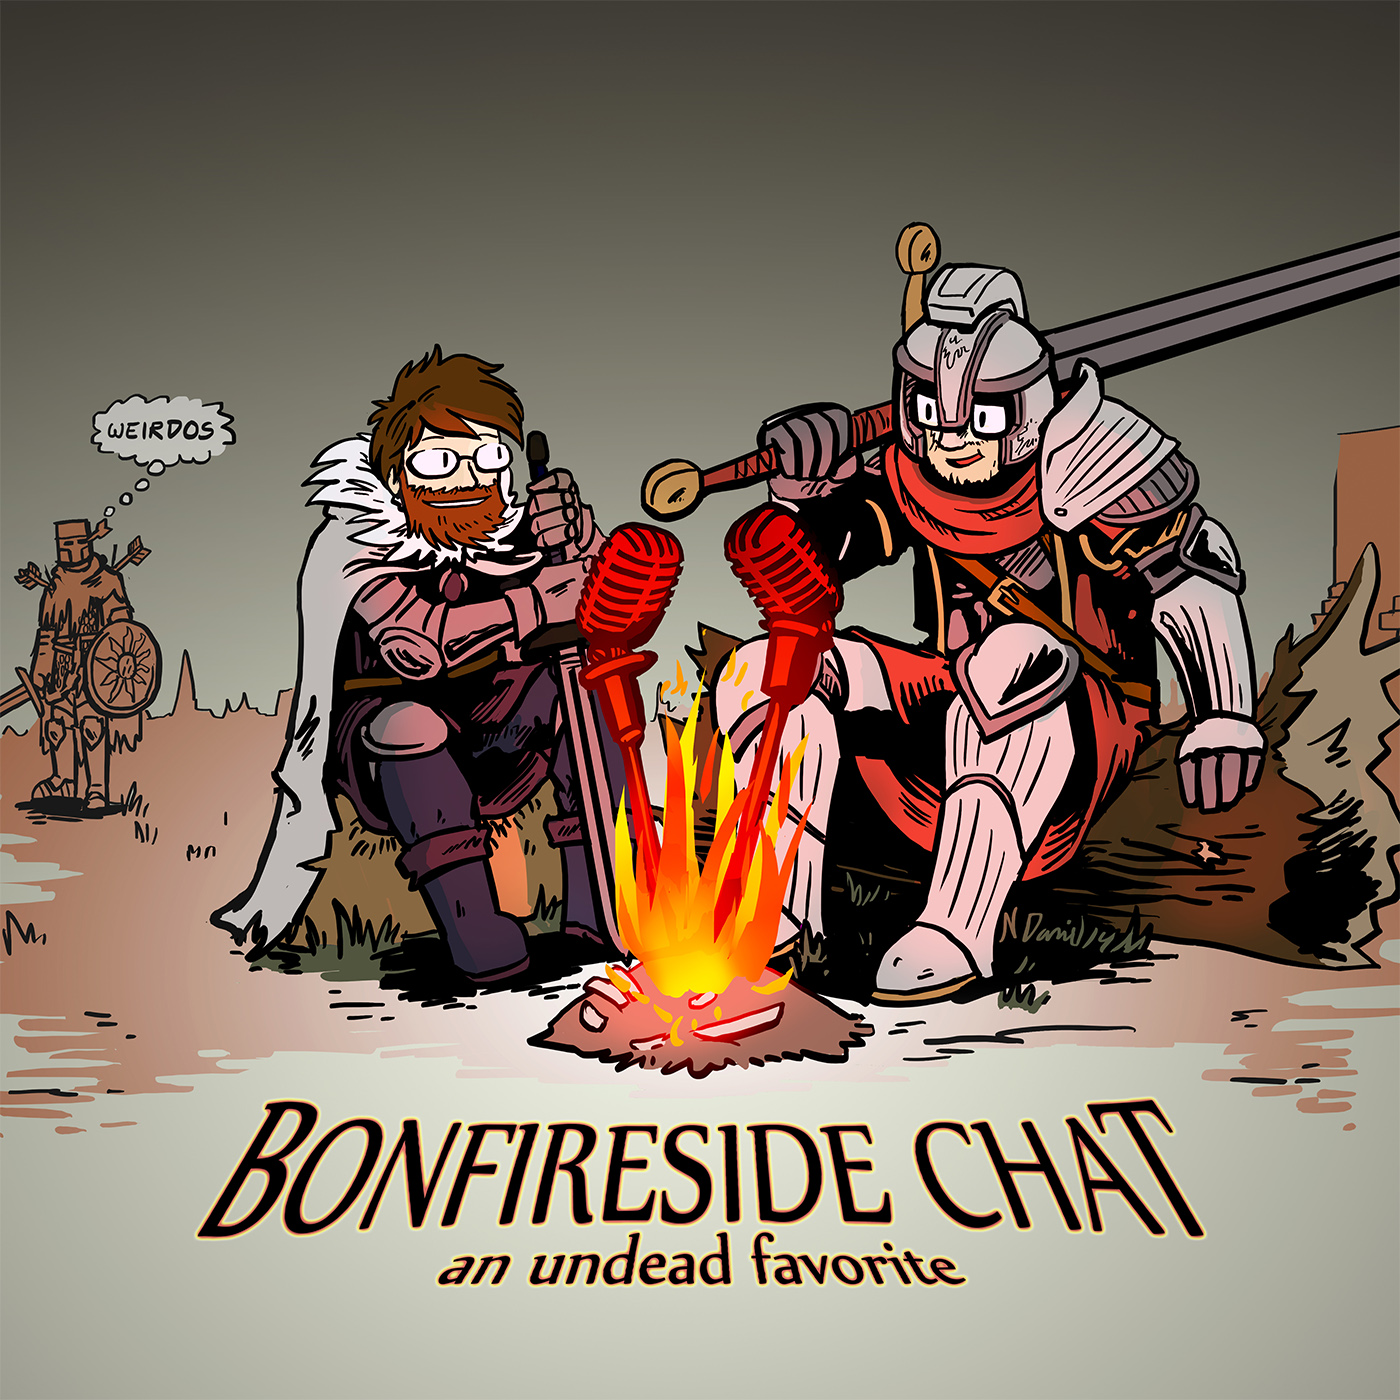 Bonfireside Chat Album Art.jpg